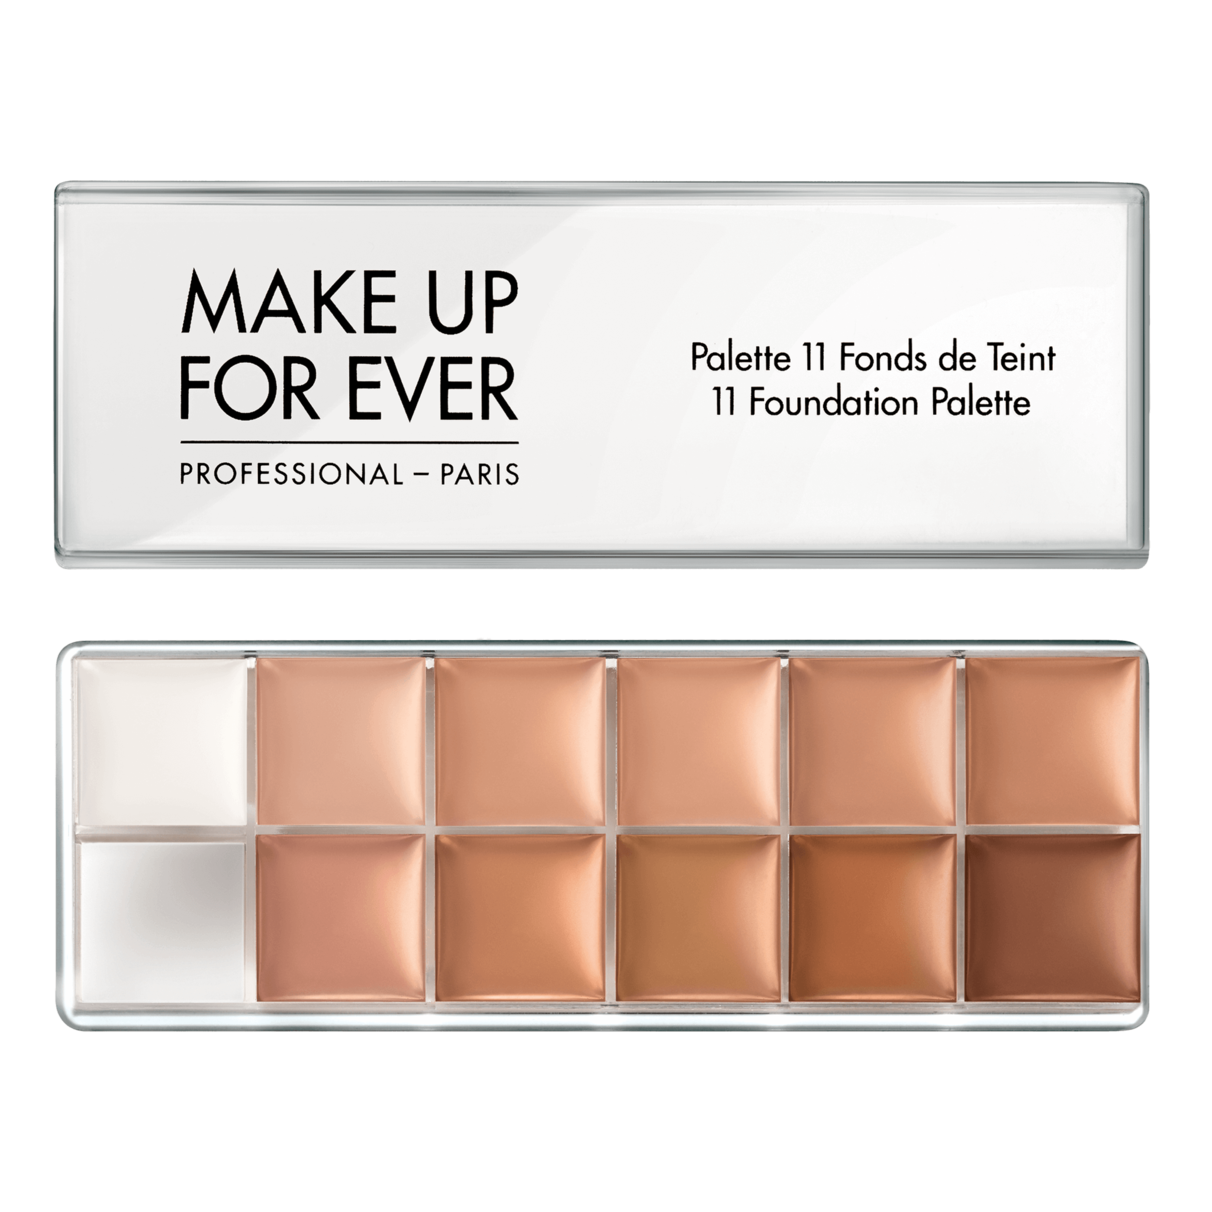 11 Foundation Palette Foundation MAKE UP FOR EVER (con